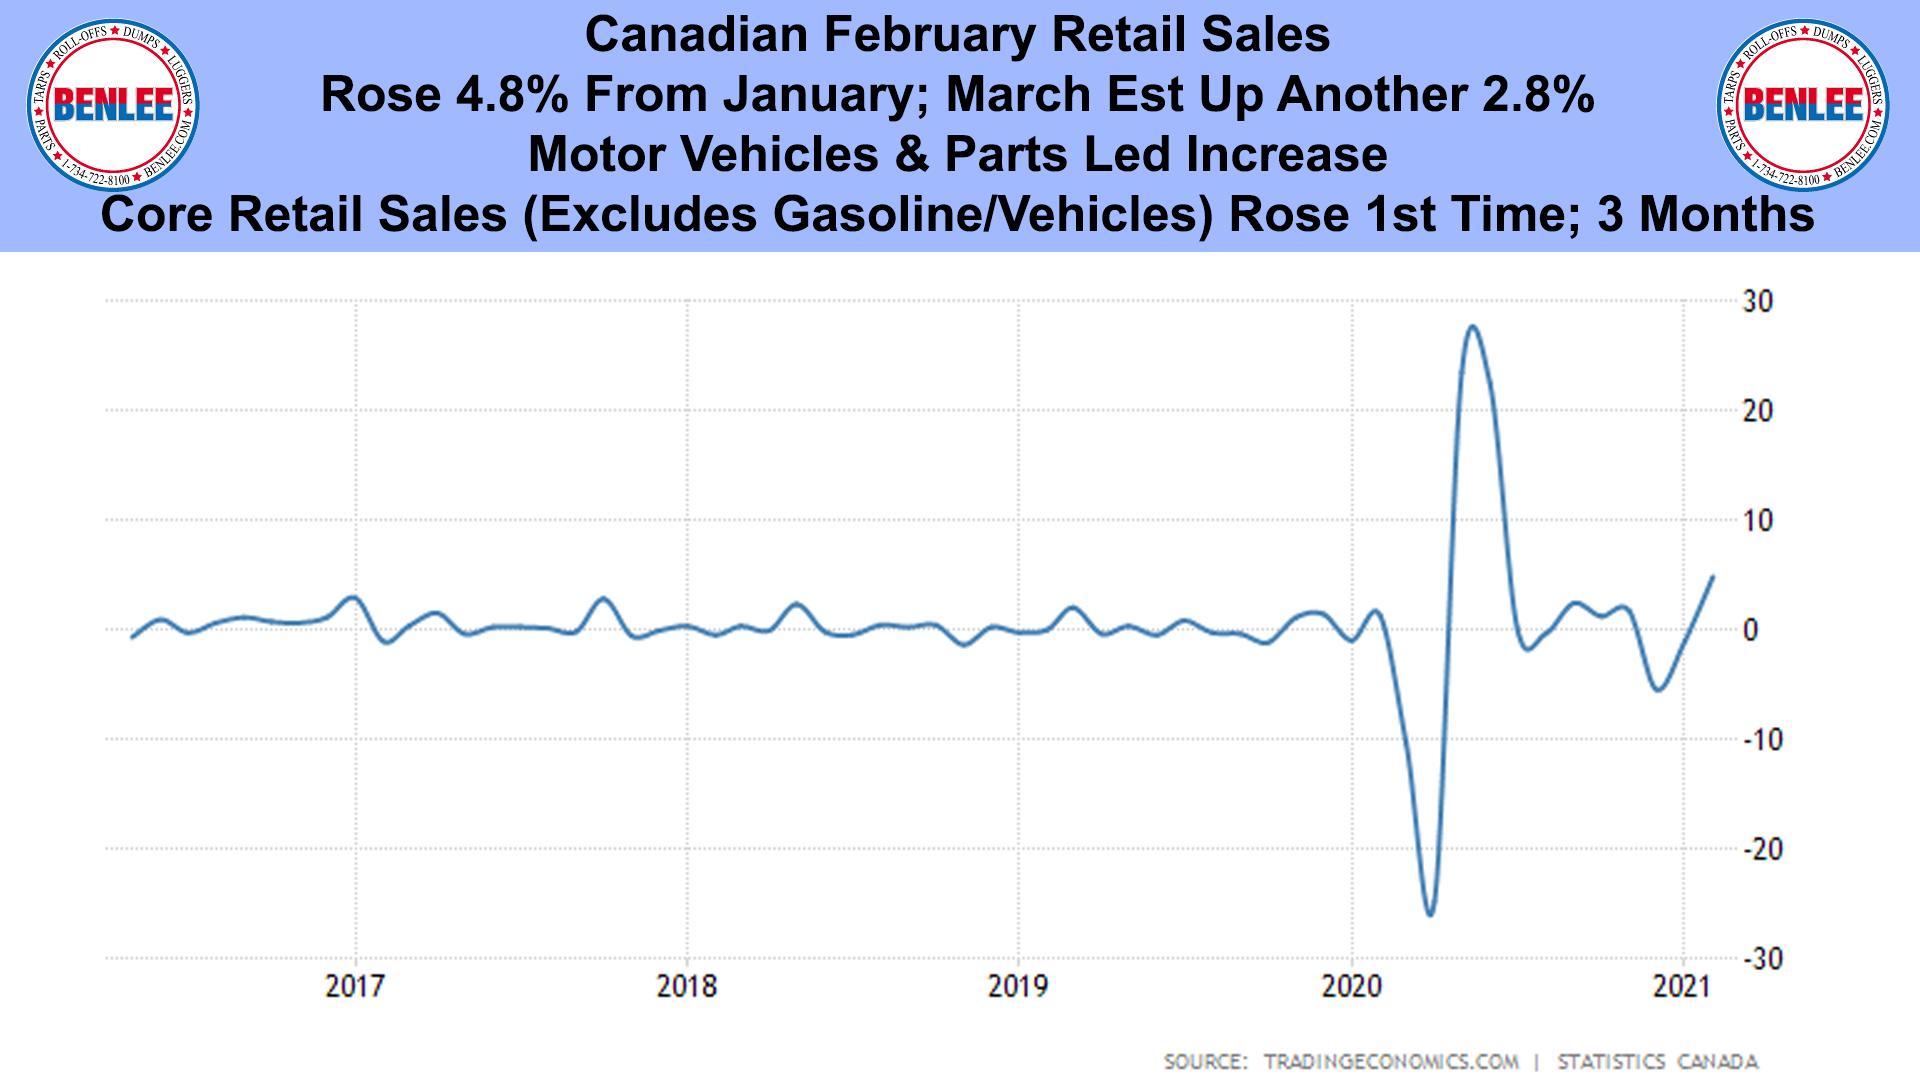 Canadian February Retail Sales